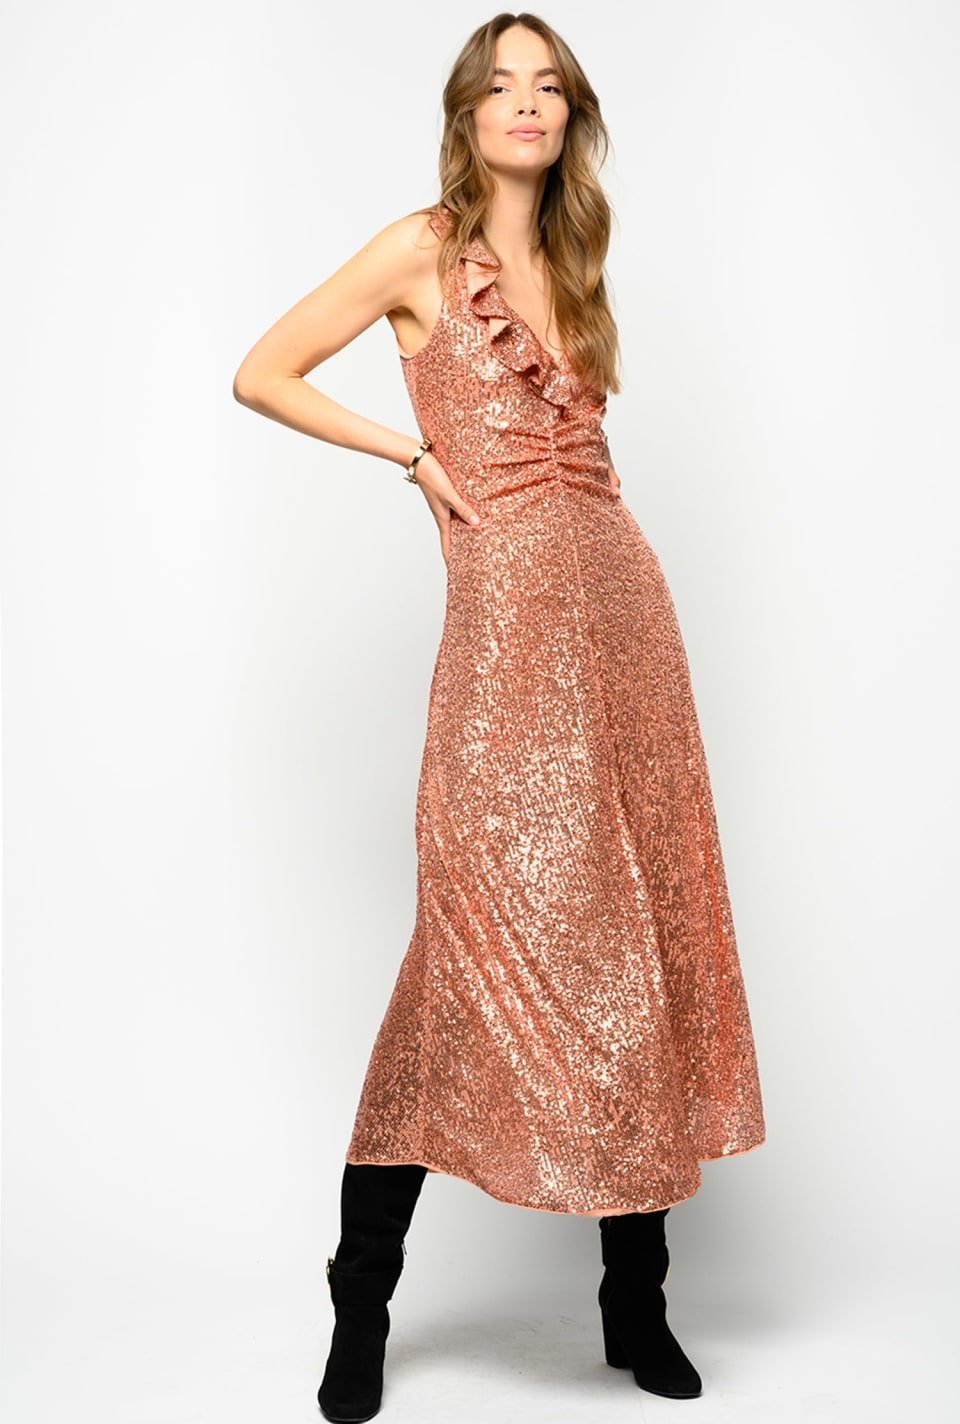 All-over sequin dress with ruffles - Pinko